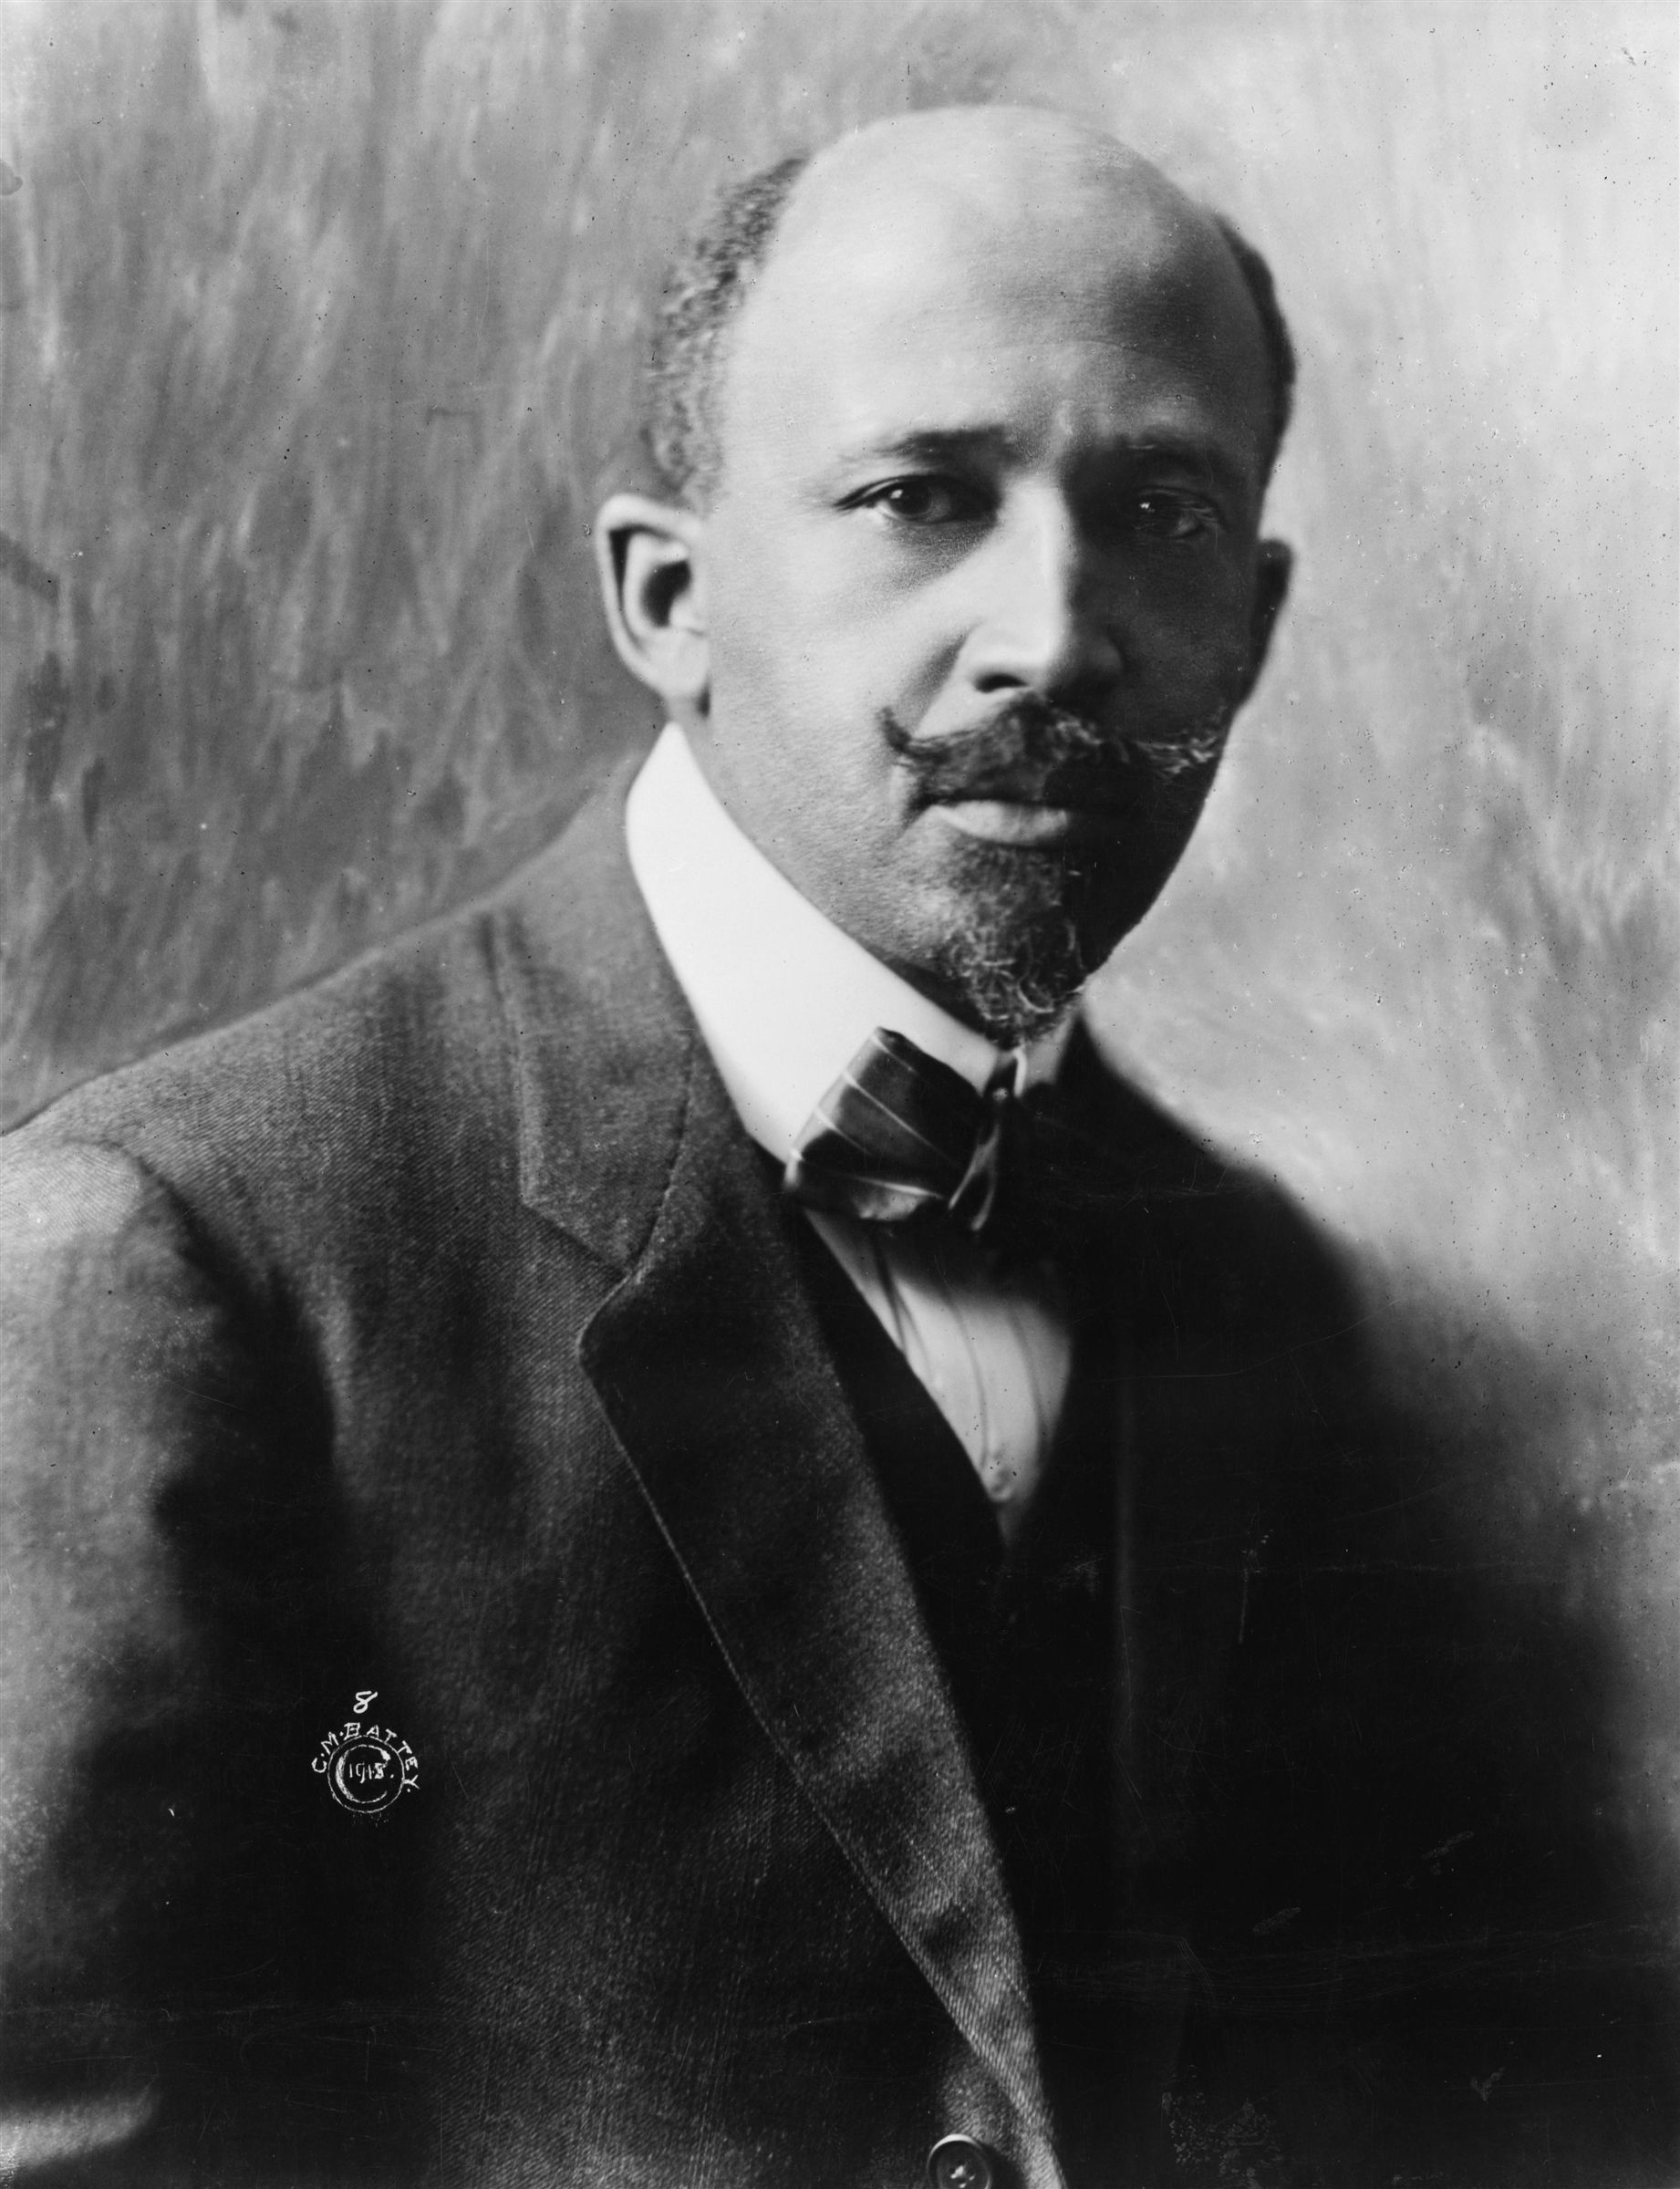 W.E.B. Du Bois was a civil rights activist. He graduated from Fisk University and went on to attend Harvard where he was the first African American to earn a Ph.D. Du Bois then received a scholarship to the University of Berlin. While there, he studied with some of the most well-known social scientists of his day. During his life, Du Bois helped lead the Niagara Movement and fought to eliminate racial violence. He died in Ghana, the day before the Civil Rights March, and was given a state funeral in Africa.